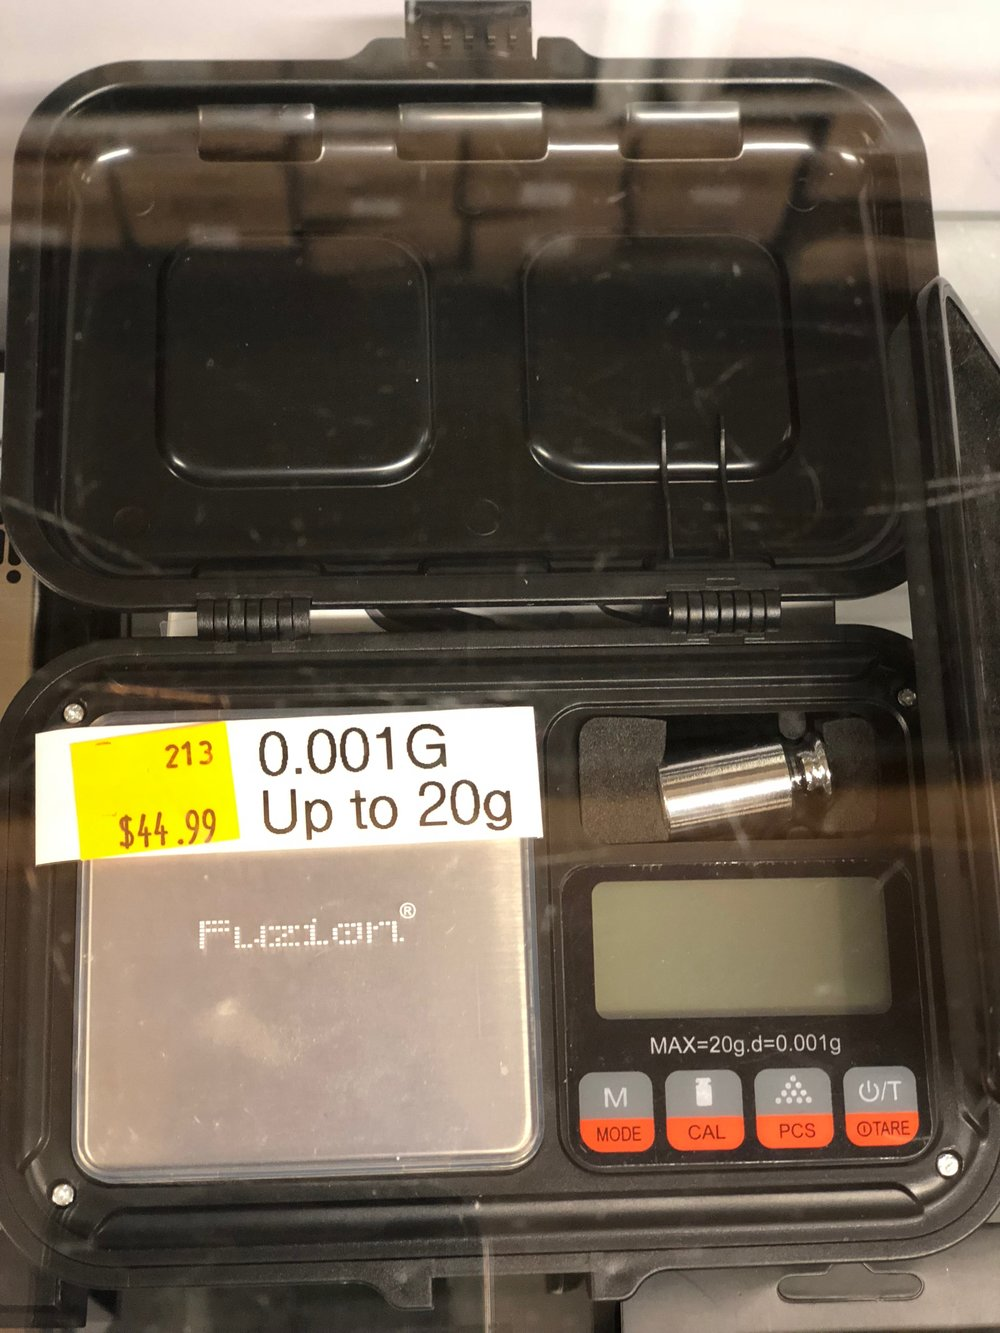 Fuzion (0.001G, UP T0 20G) 10% OFF ON $44.99=$40.50